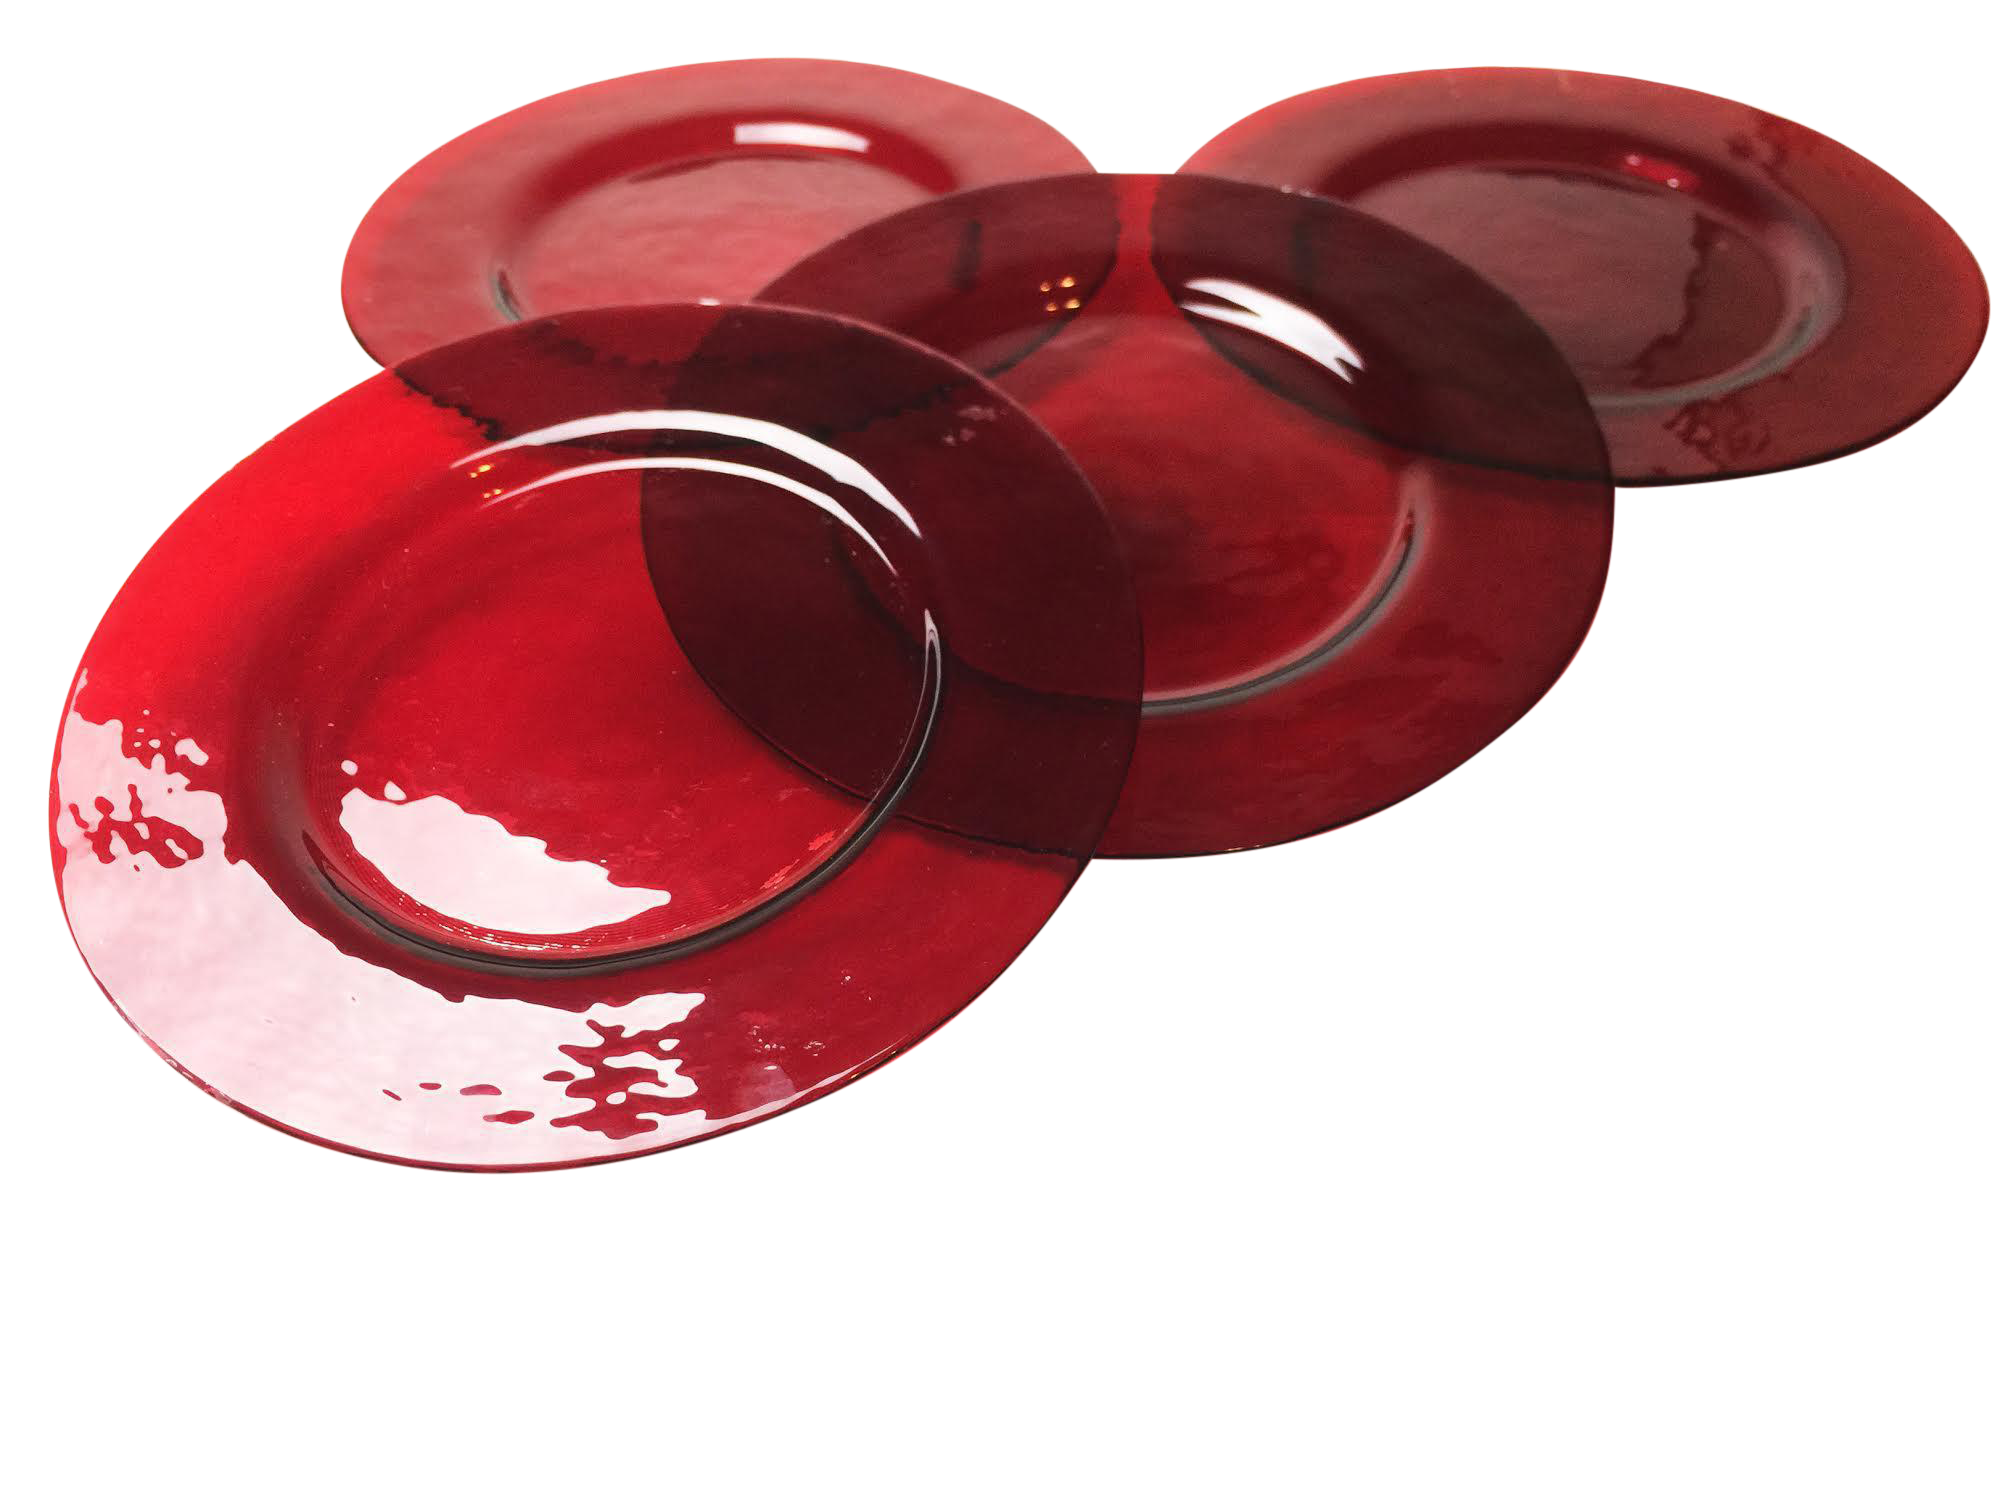 Dinner clipart pink plate. Anchor hocking ruby red